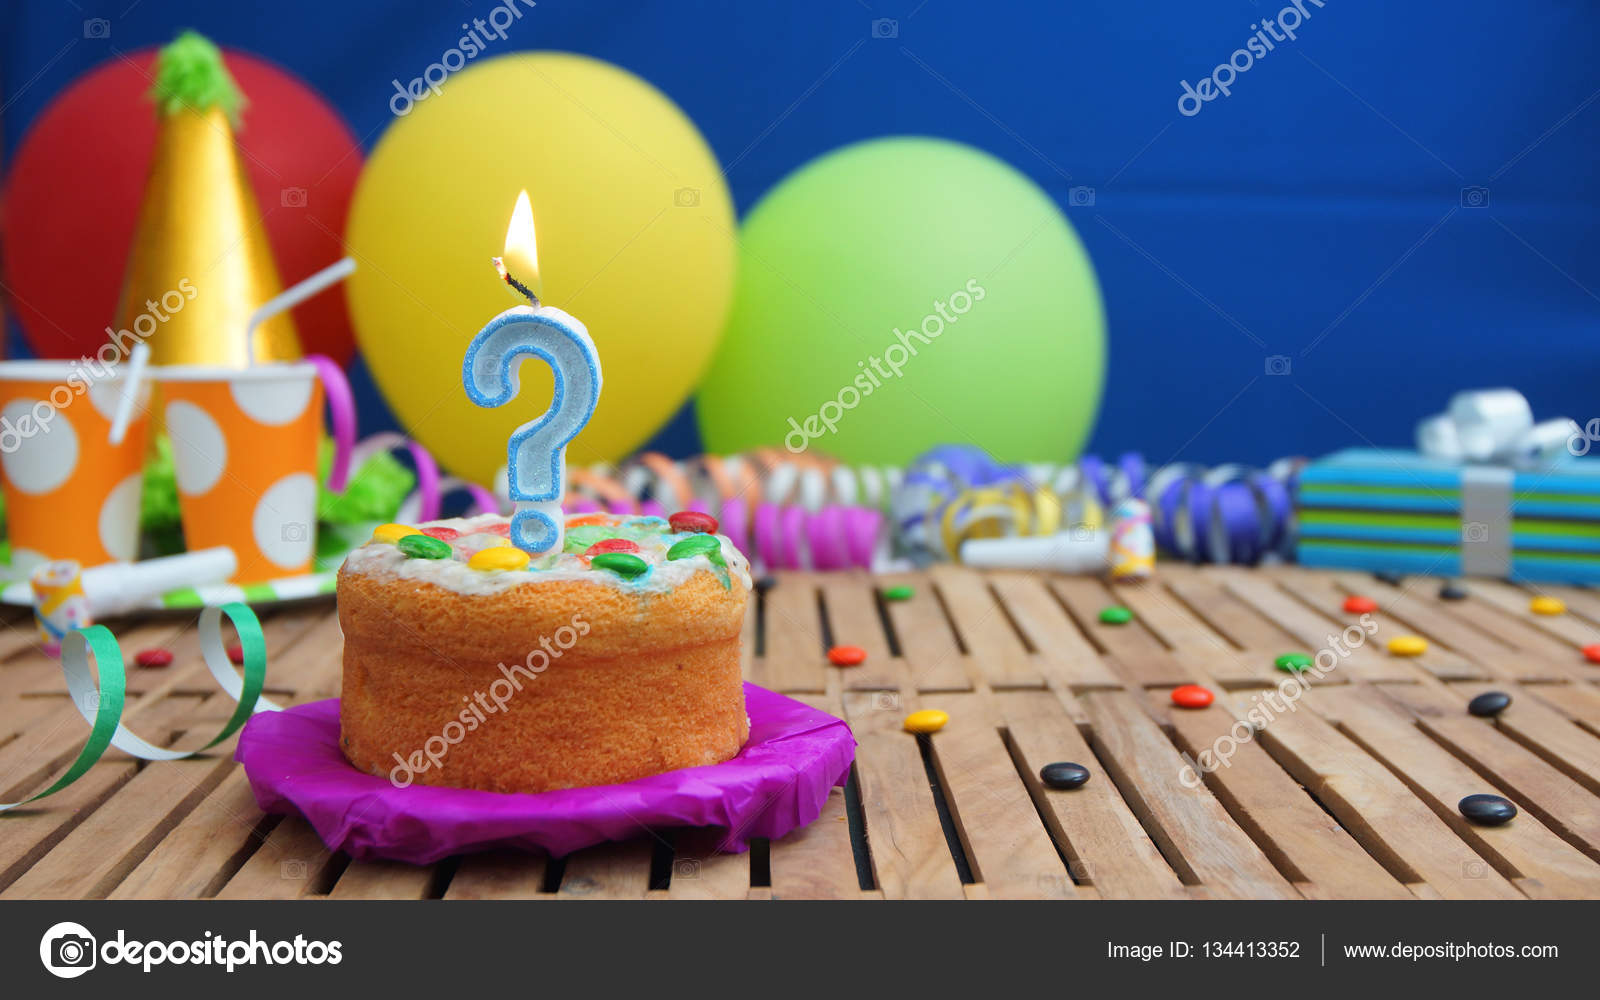 Birthday Cake Balloons Images ~ Birthday cake with candle in the shape of a question mark on